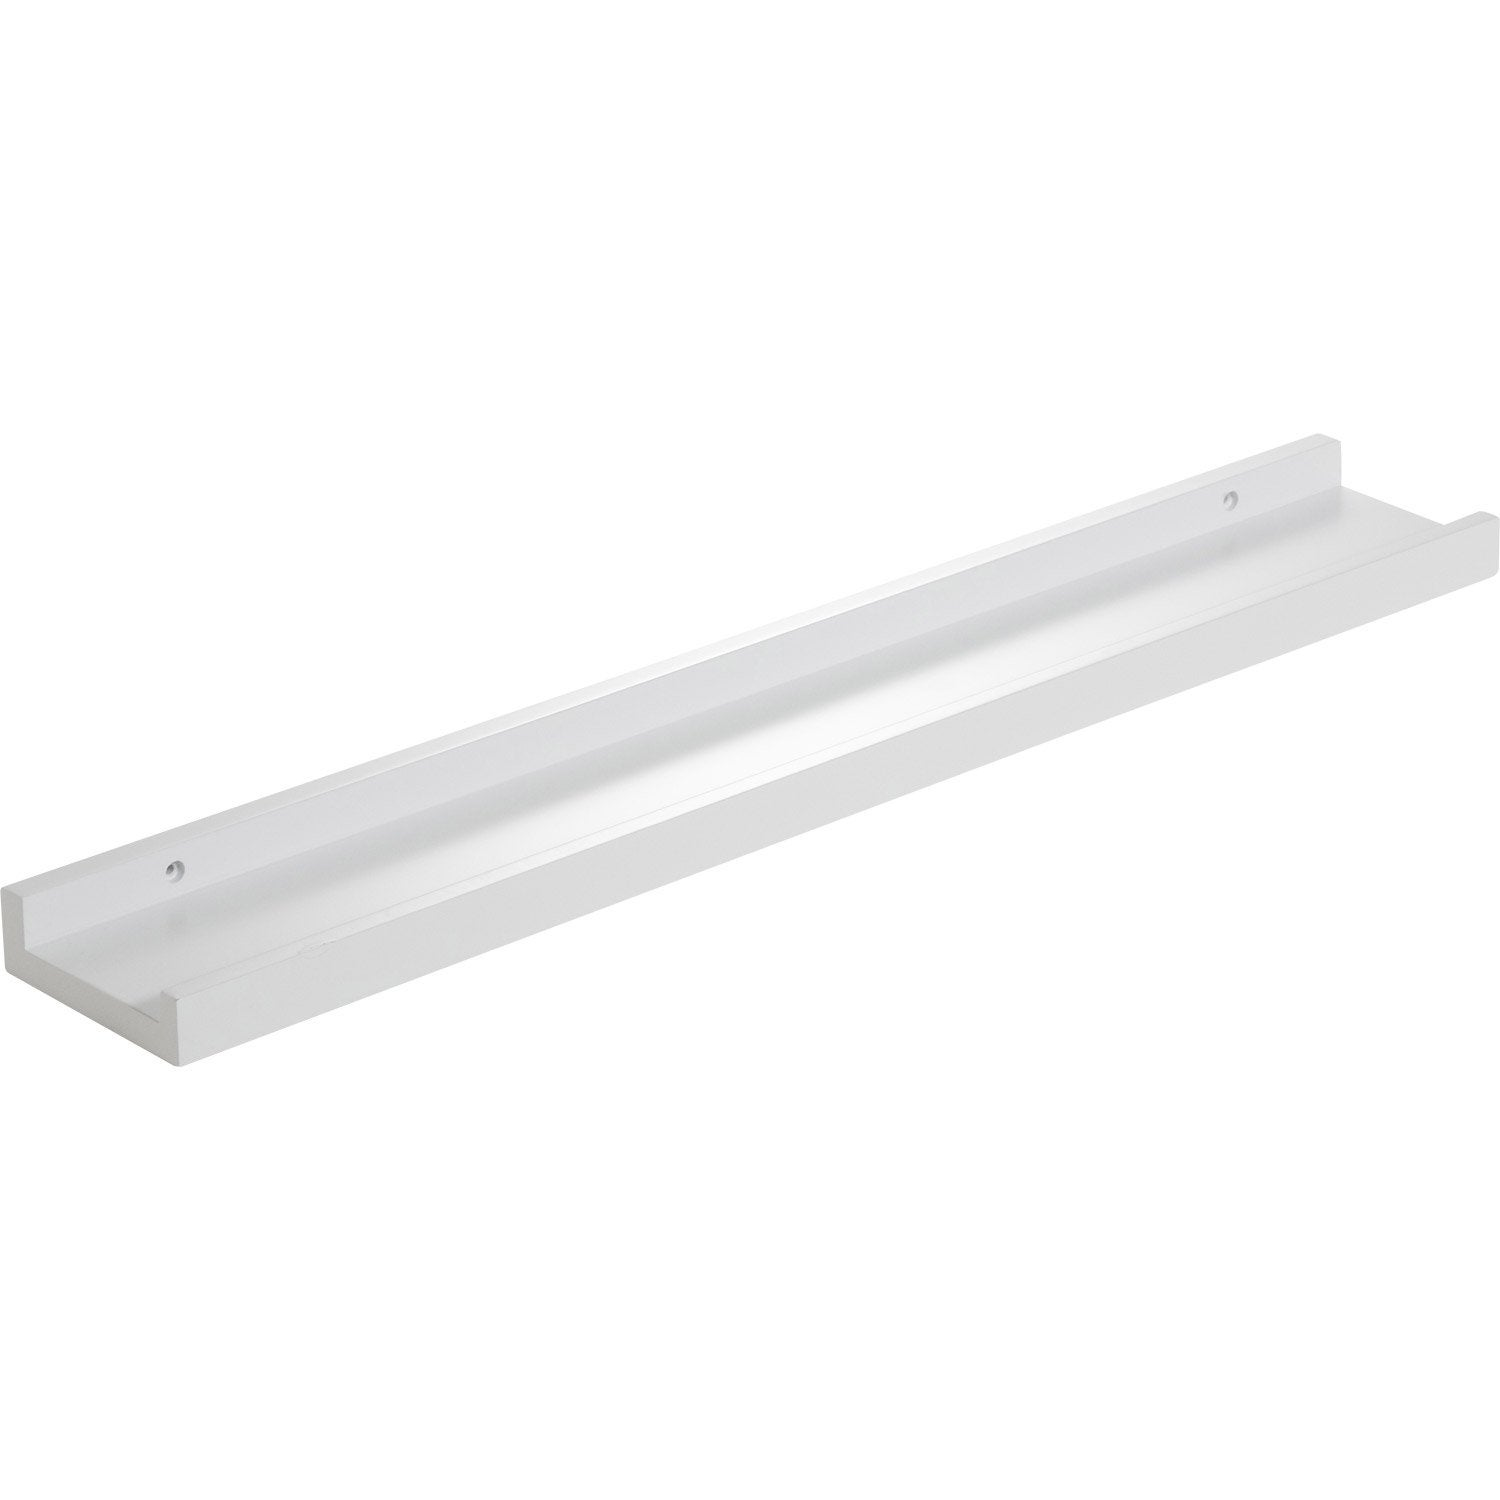 Etag re pour cadre photo blanc l 60 x p 9 cm mm for Cadre photo mural ikea